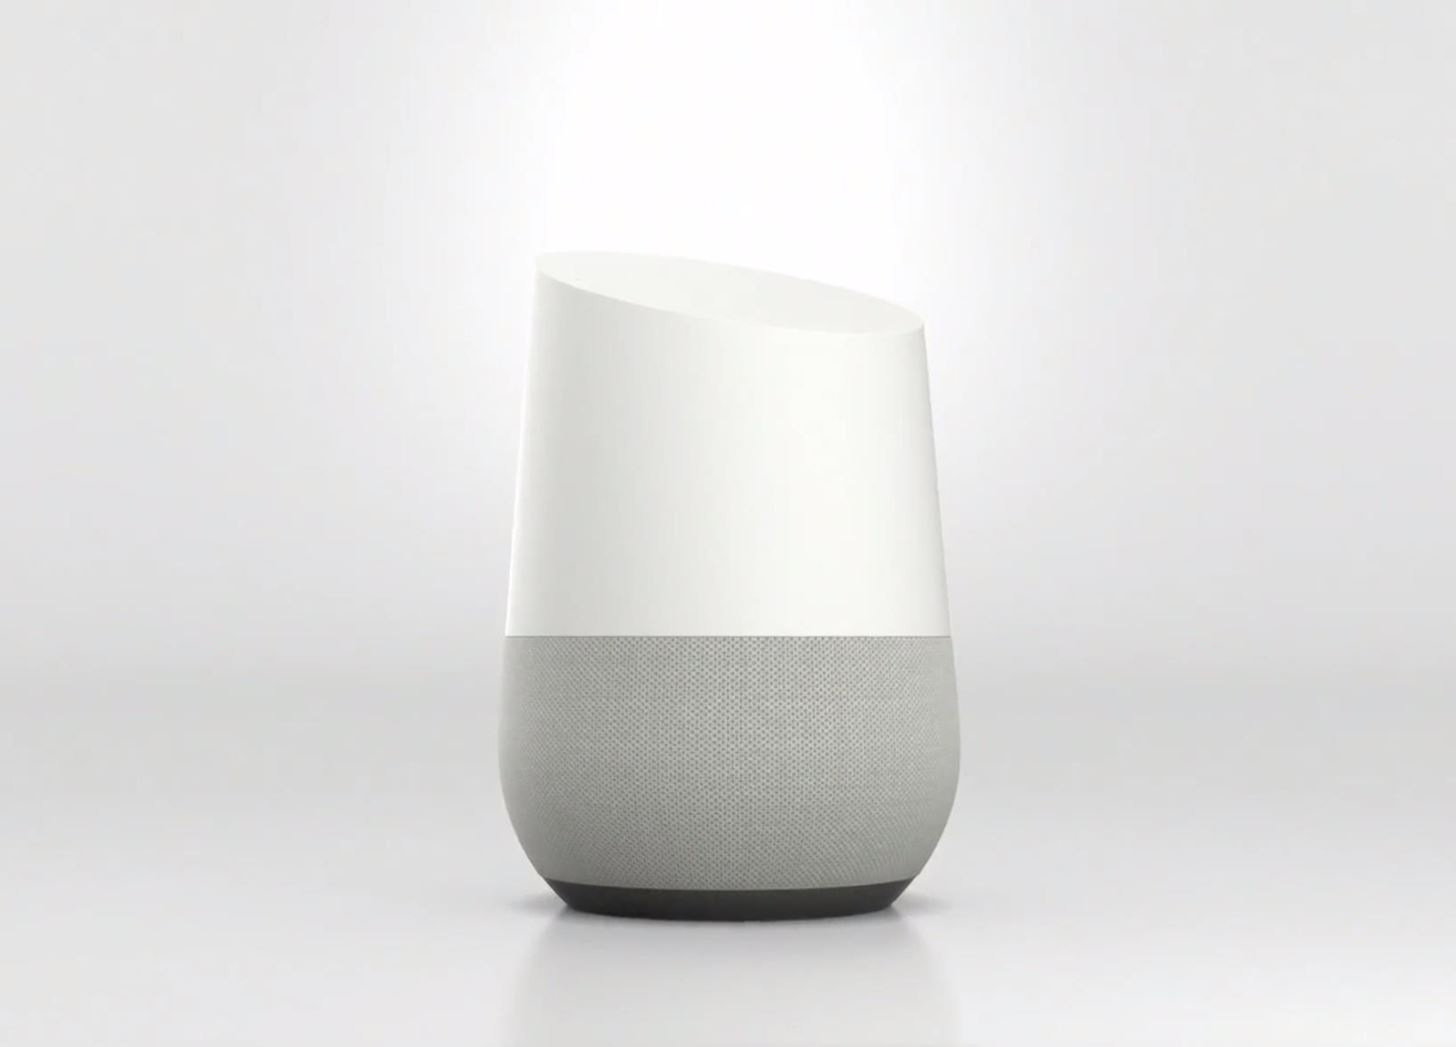 Google's New Home Assistant Is an Amazon Echo Killer